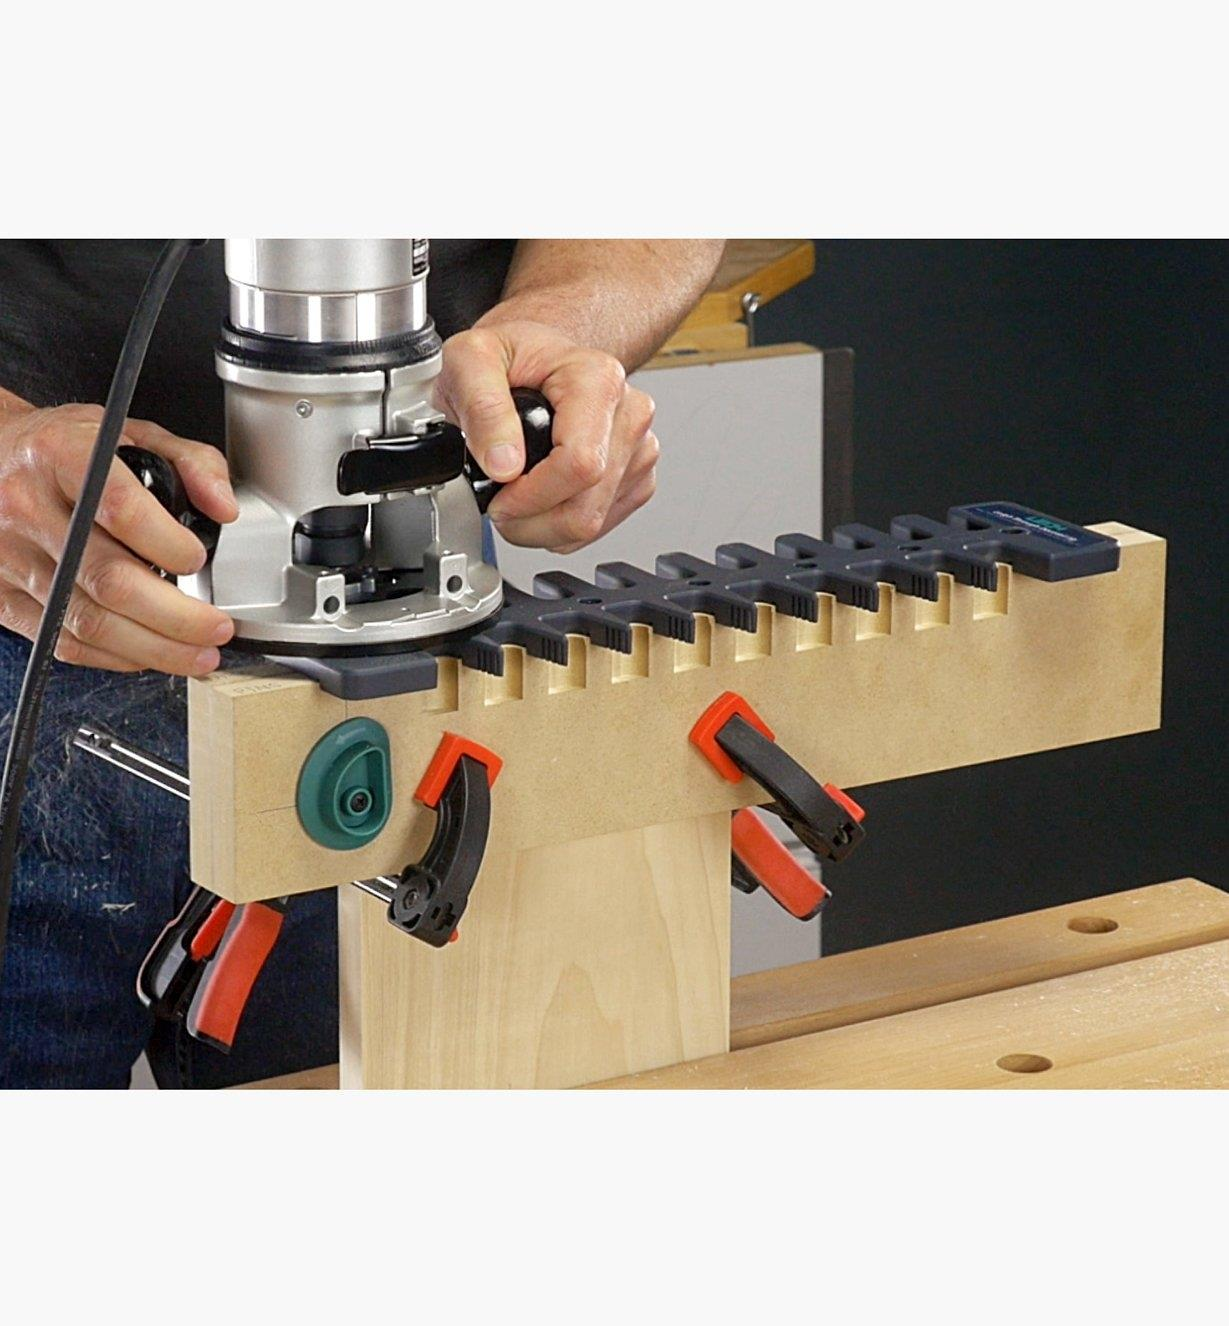 A man using a handheld router with the Leigh Through Dovetail Jig to cut dovetails